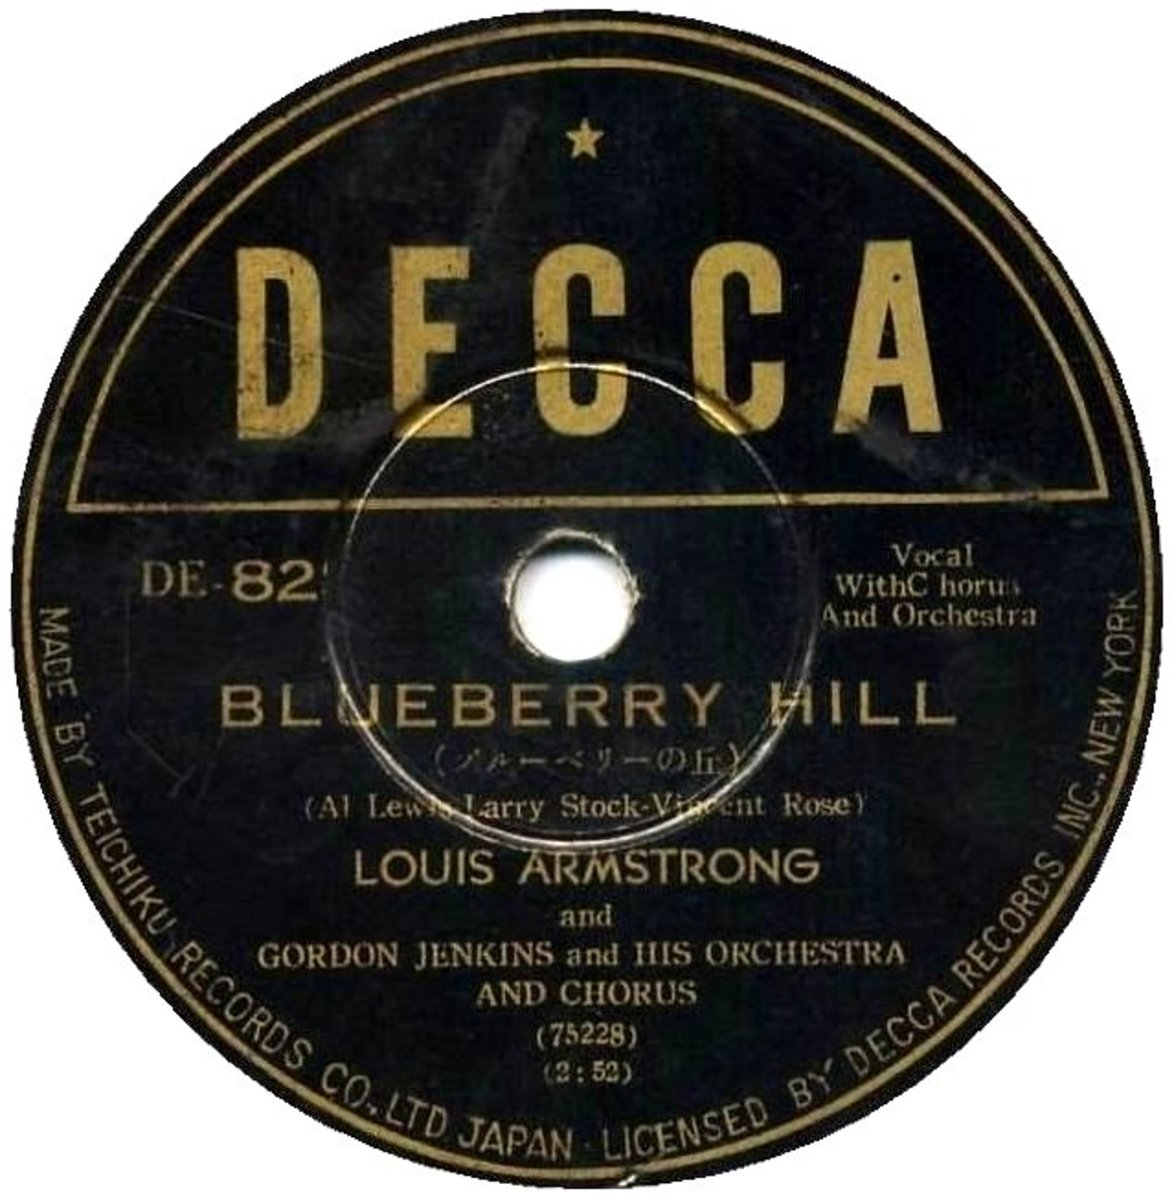 Louis Armstrong with Gordon Jenkins Orchestra- blueberry hill LP